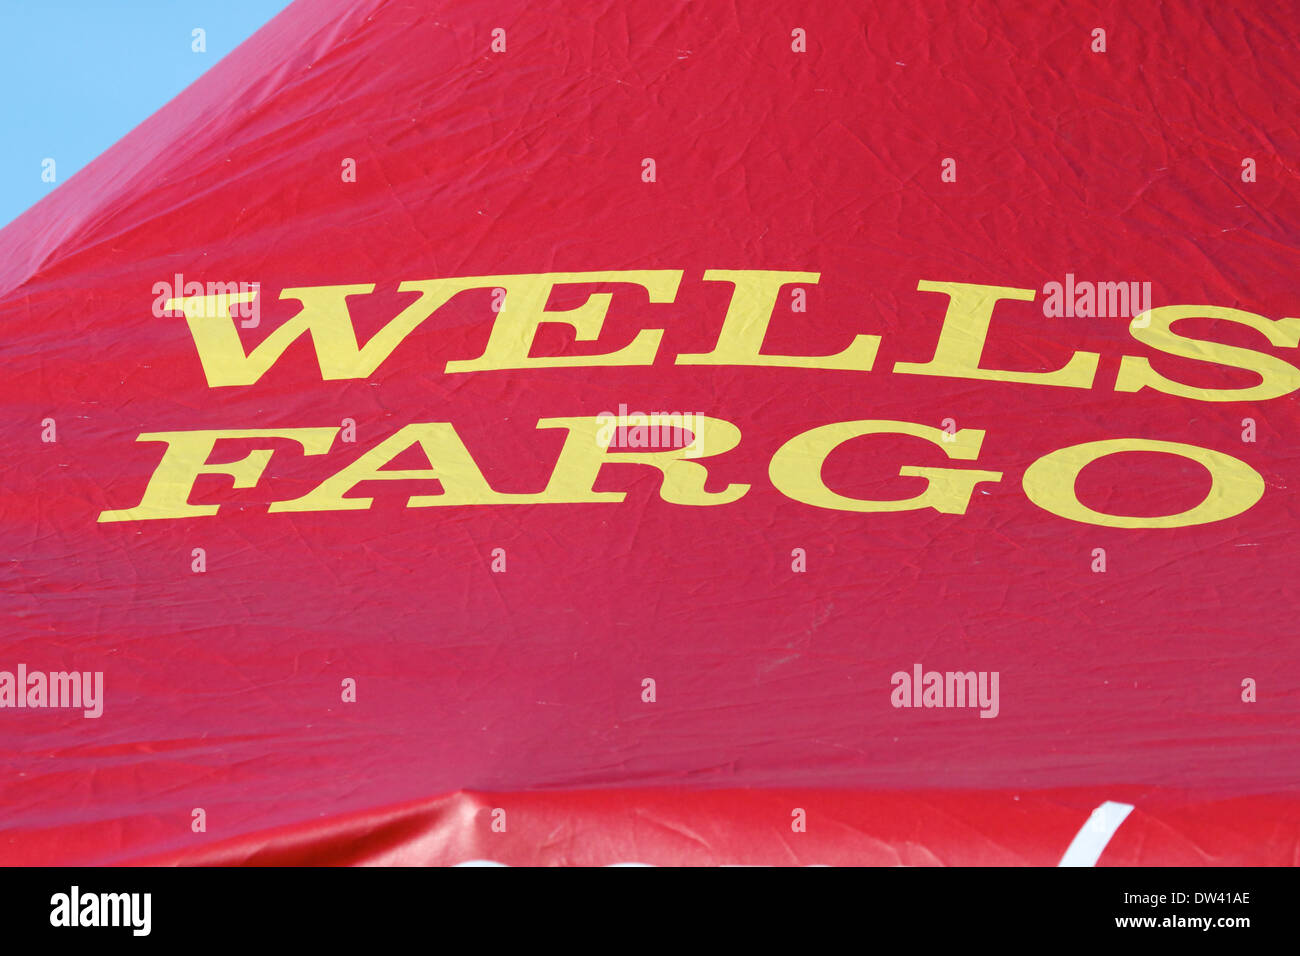 Wells Fargo bank sign on a canopy at an outdoor event